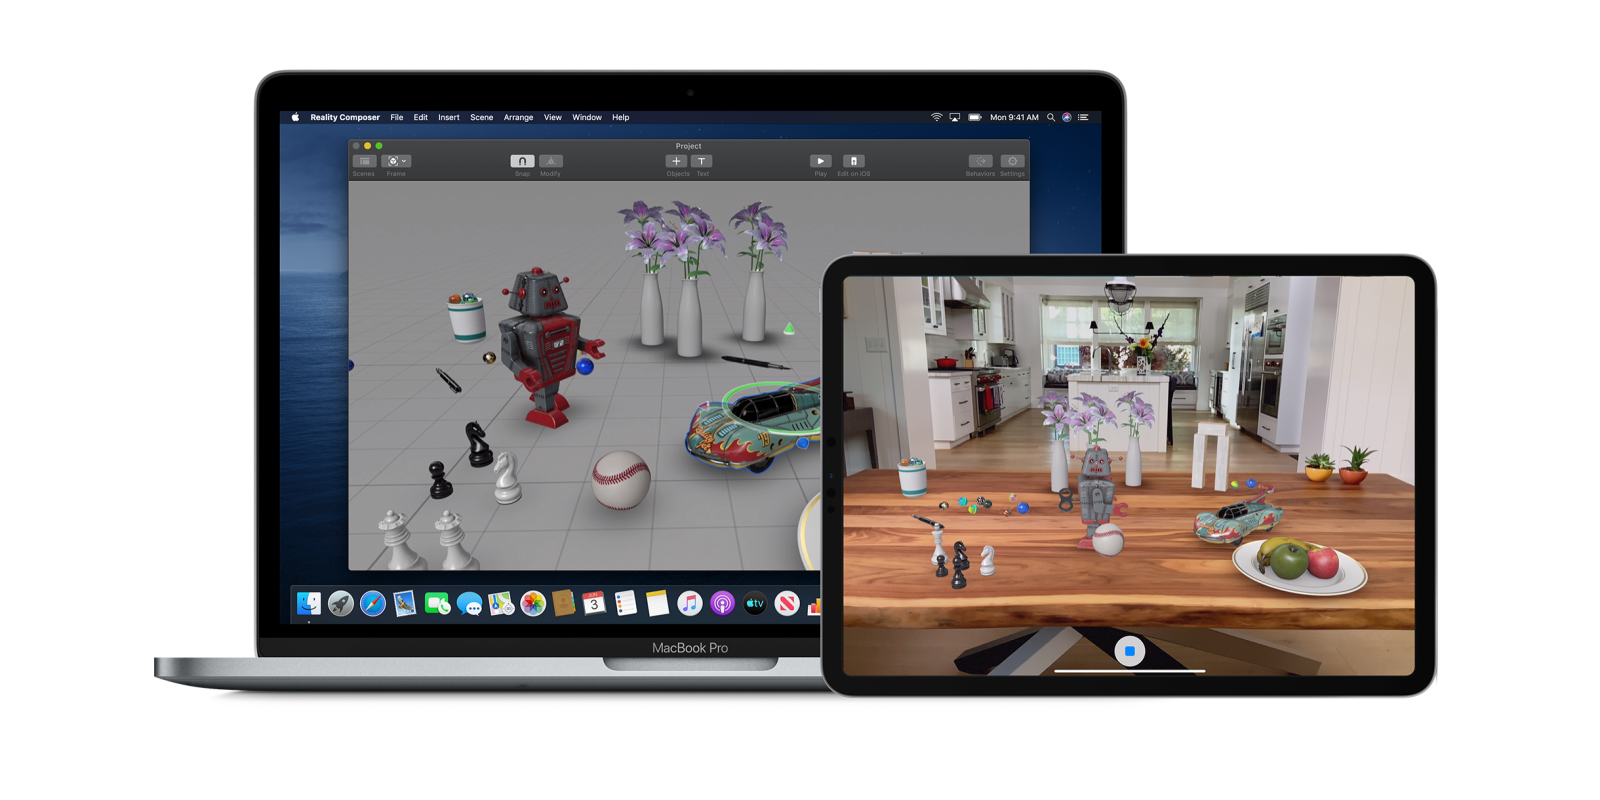 Apple releases its Reality Composer AR utility app for iPhone and iPad